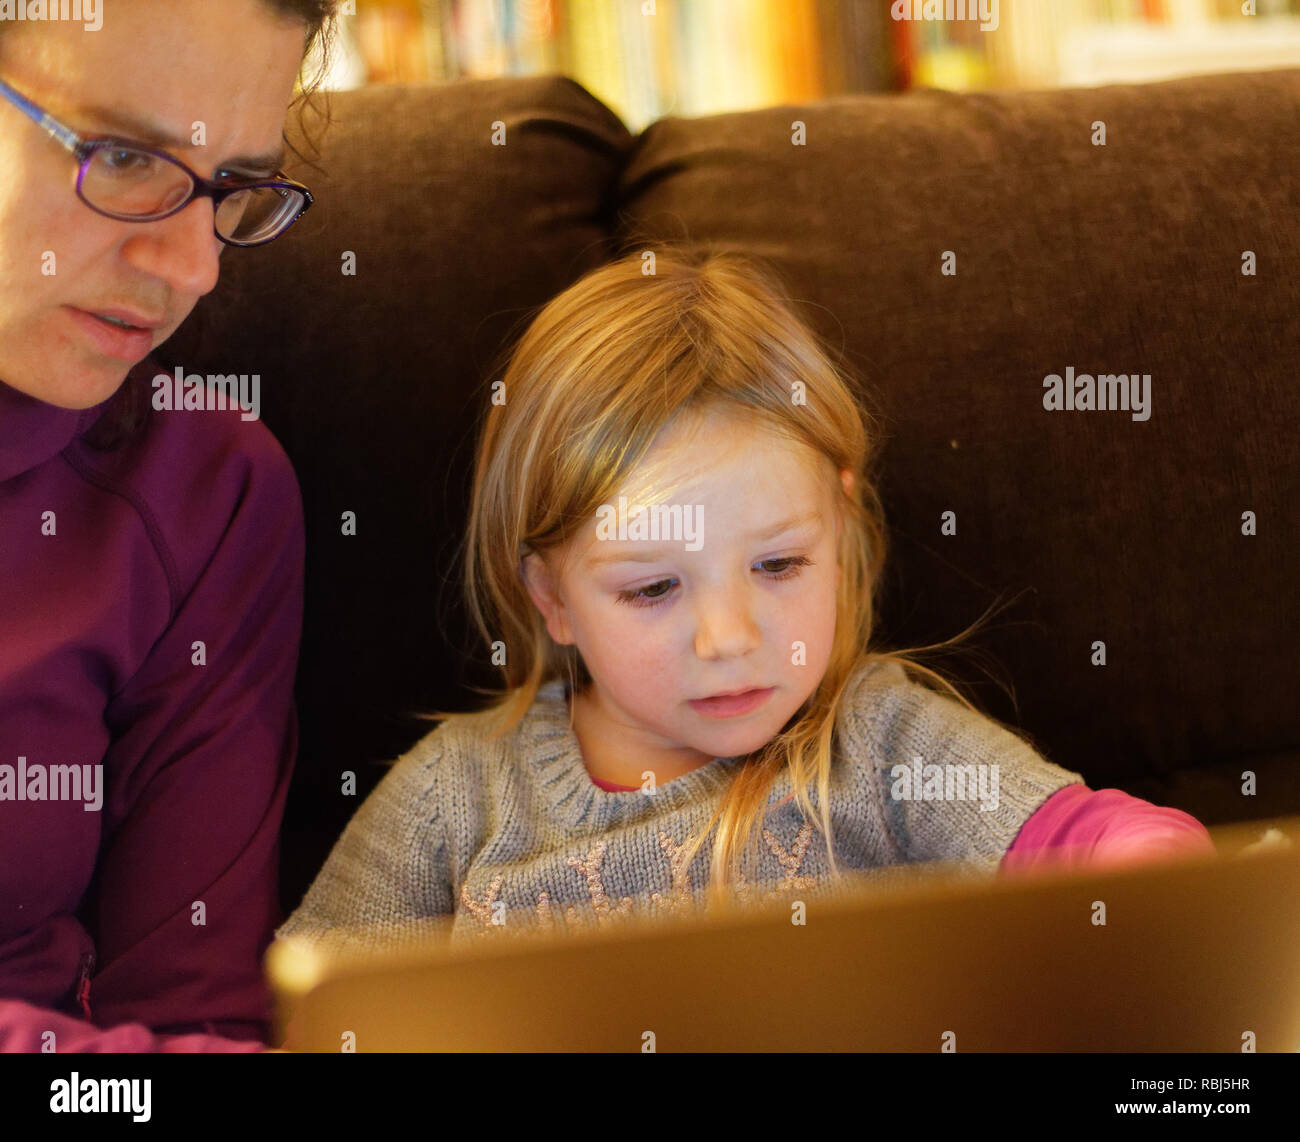 A little girl (4 yrs old) and her mum sat on a sofa using a laptop computer together - Stock Image